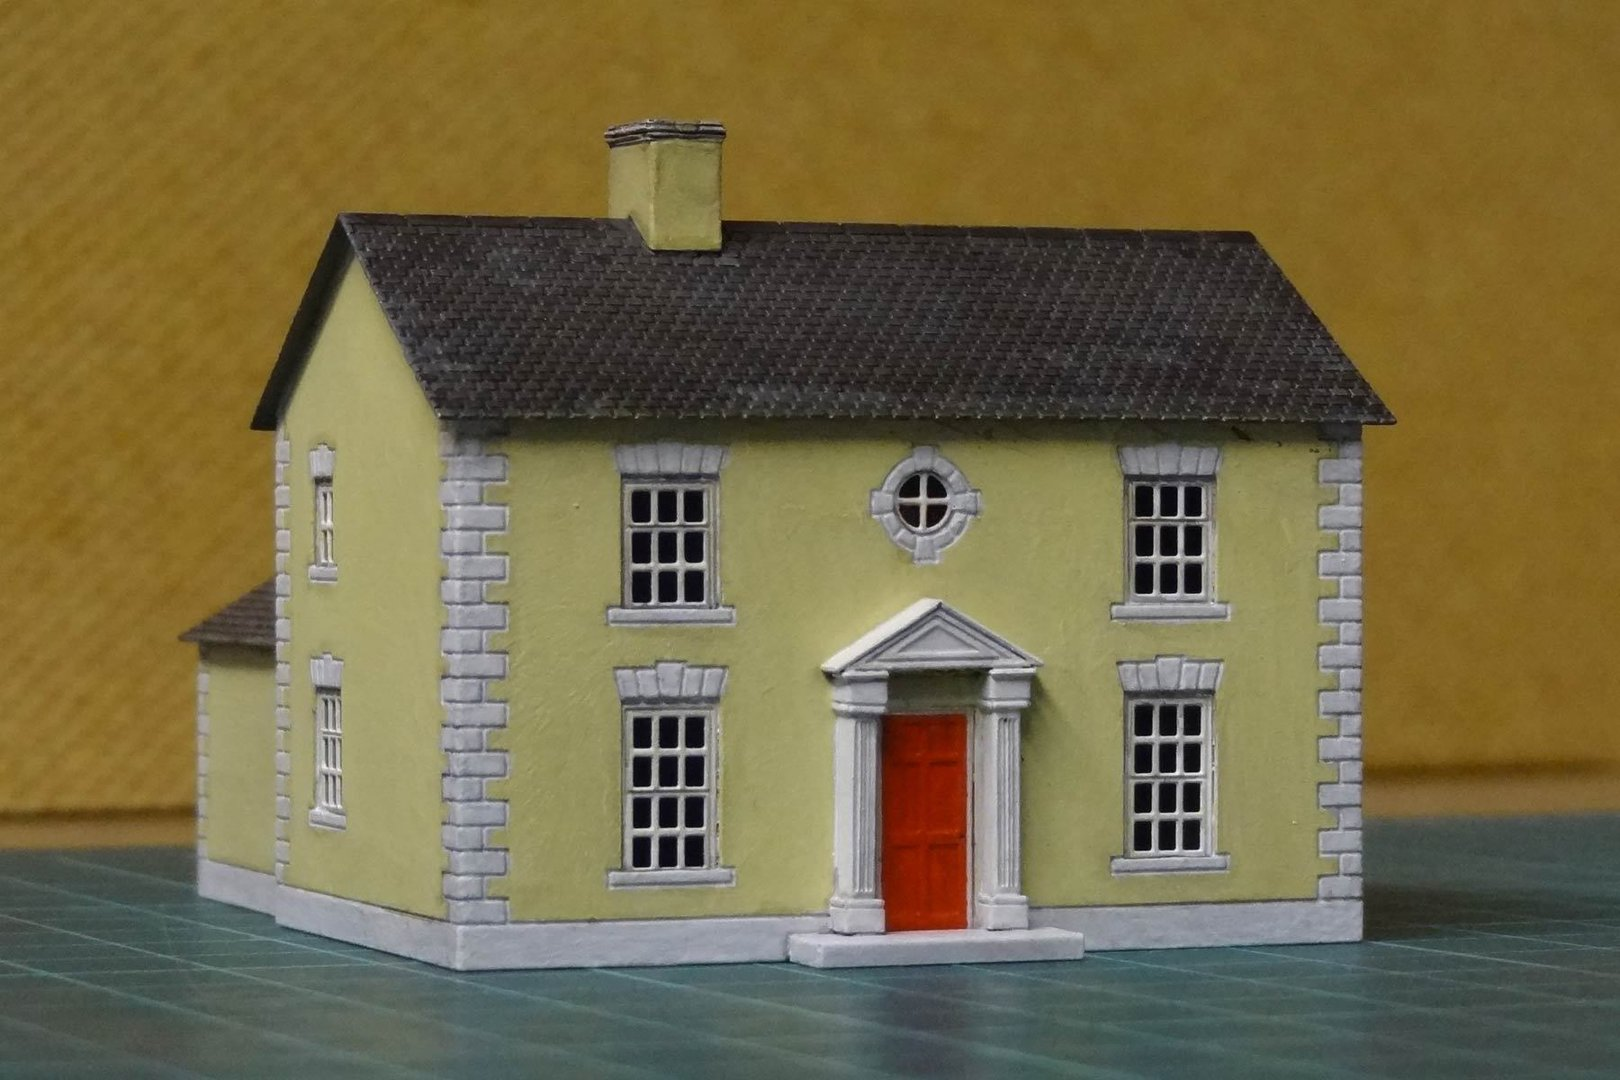 N4 detached house with portico